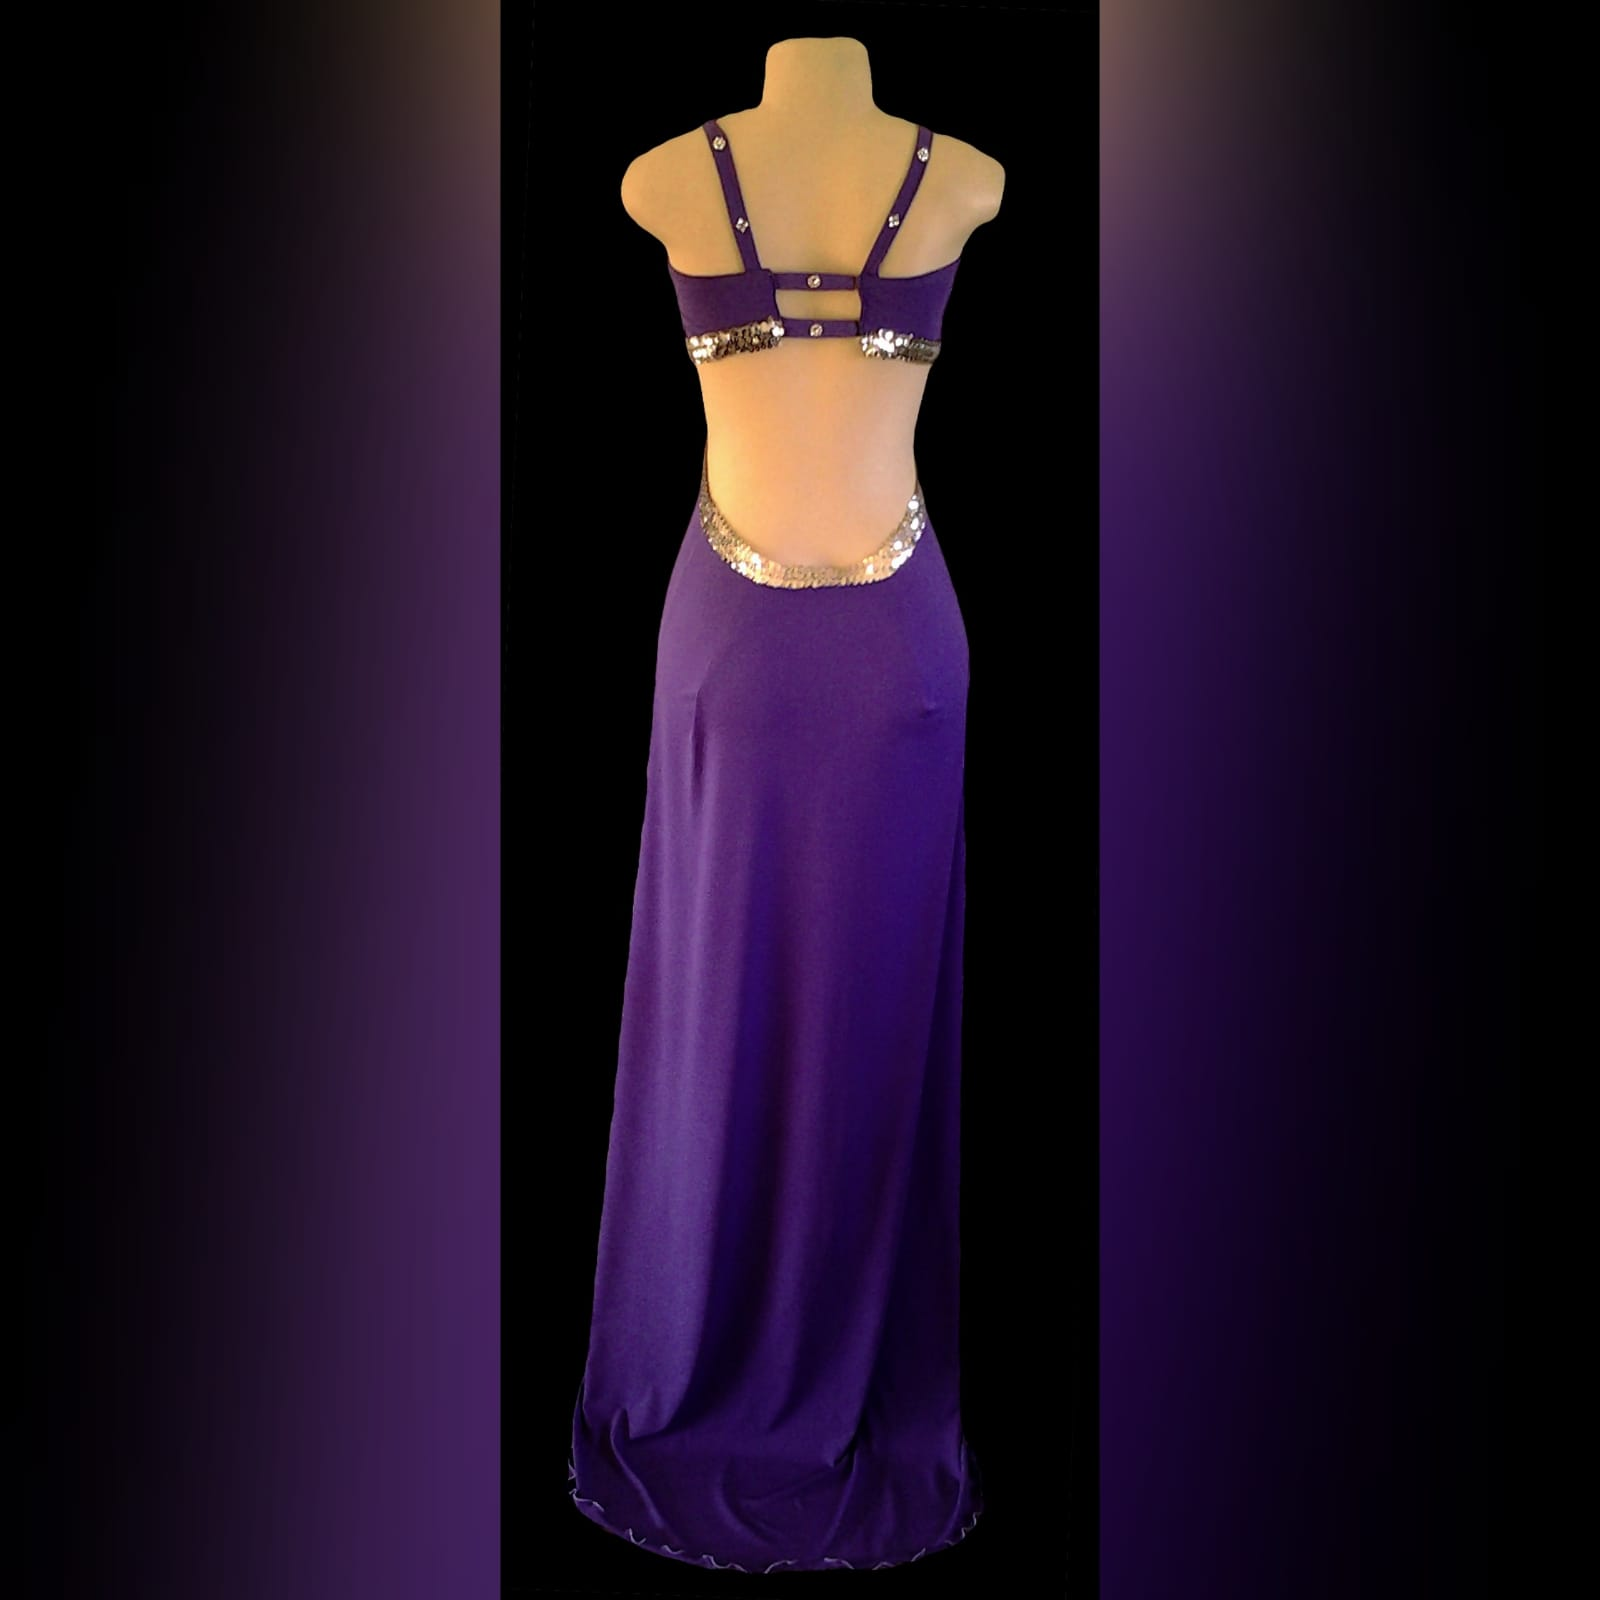 Purple long sexy prom dress 6 purple long sexy prom dress, with side tummy openings, cleavage opening, open low back and a slit, all detailed with silver sequins.